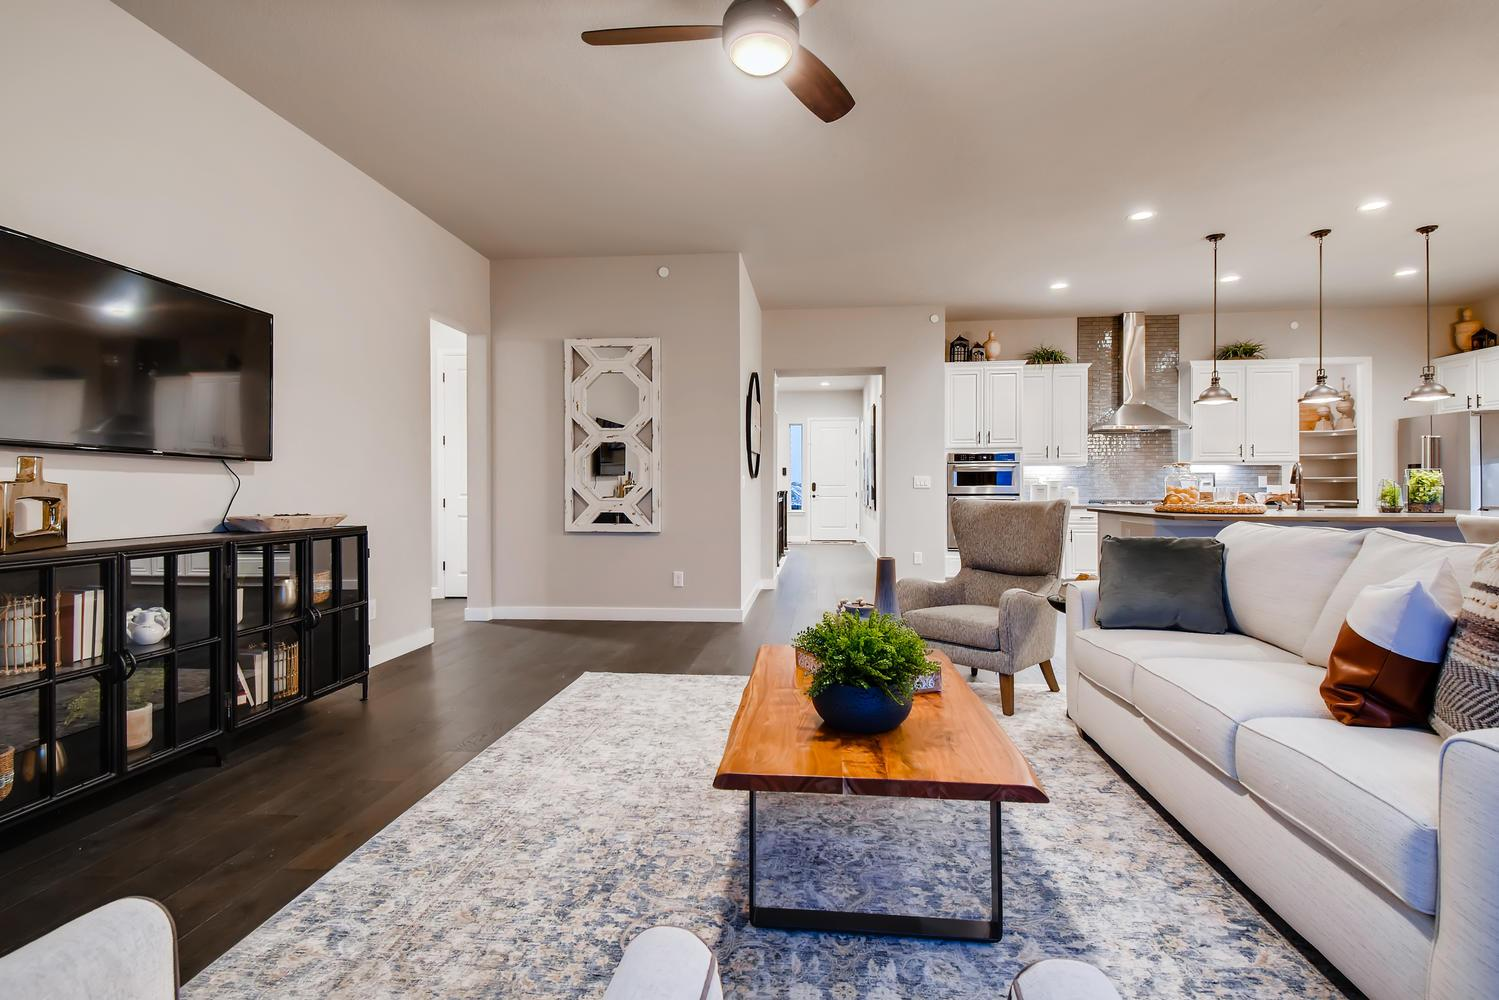 Living Area featured in the Penrose - Promontory at Todd Creek By RichfieldHomes in Denver, CO